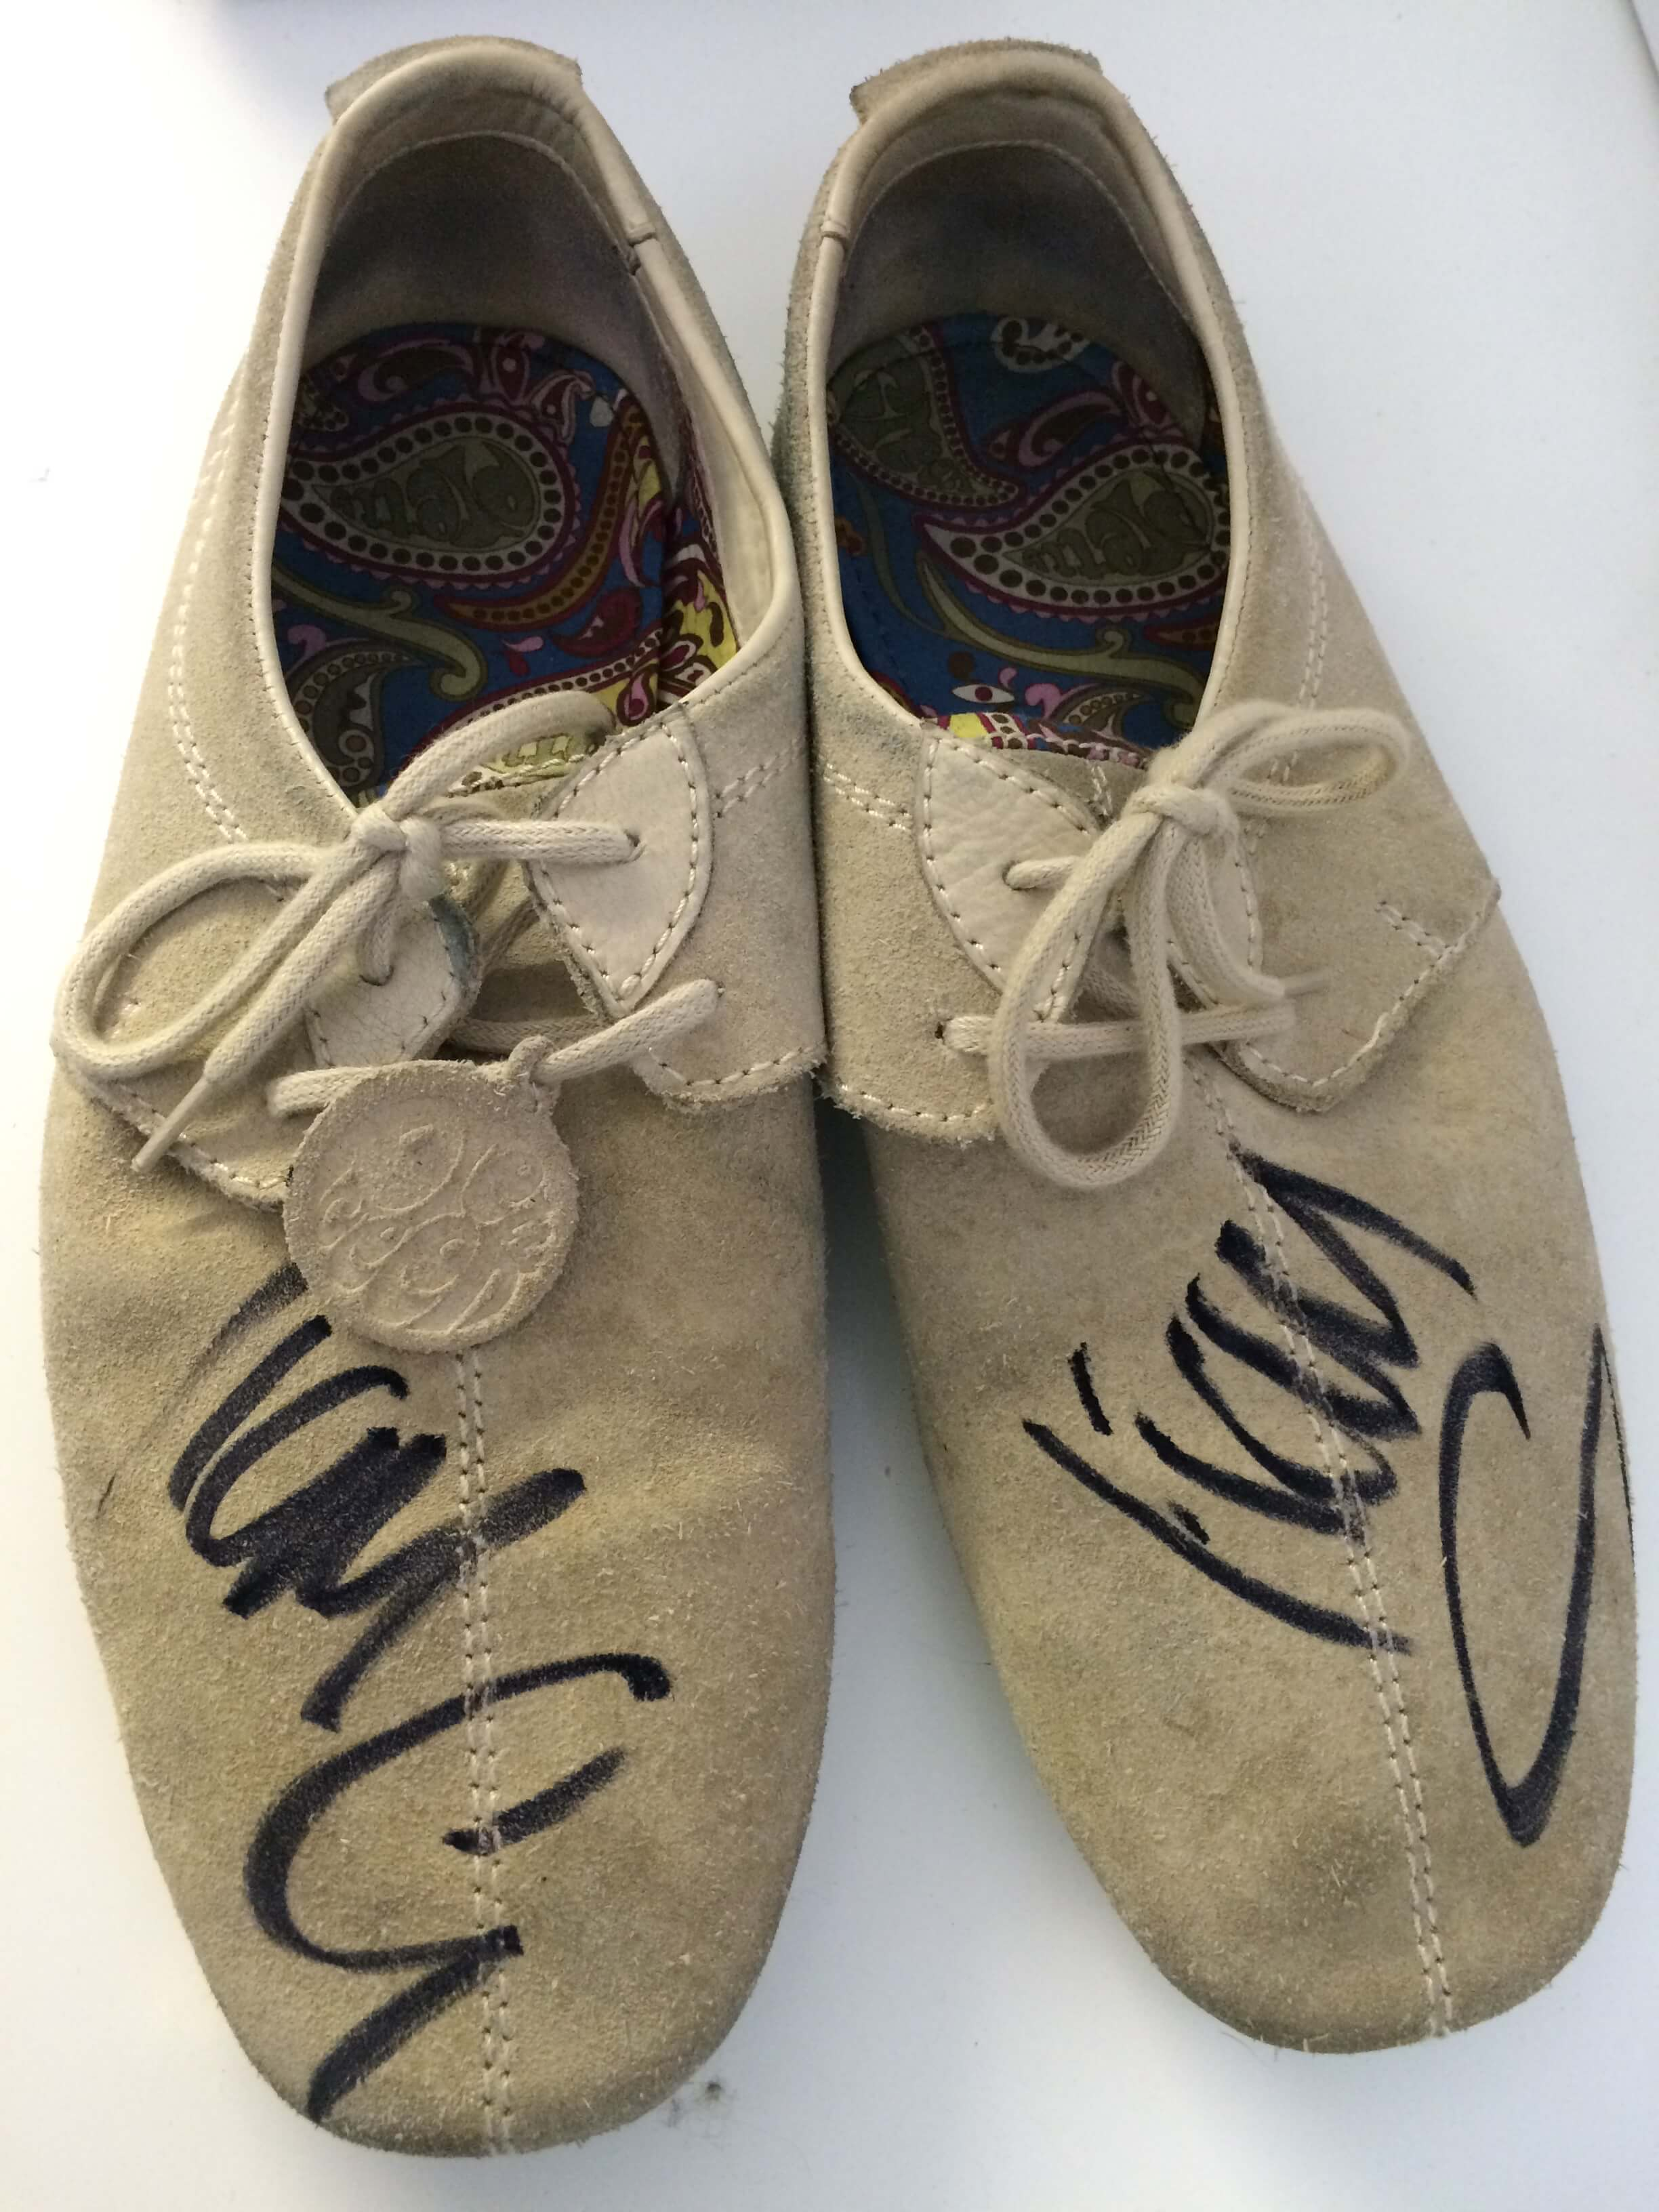 Liam Gallagher shoes